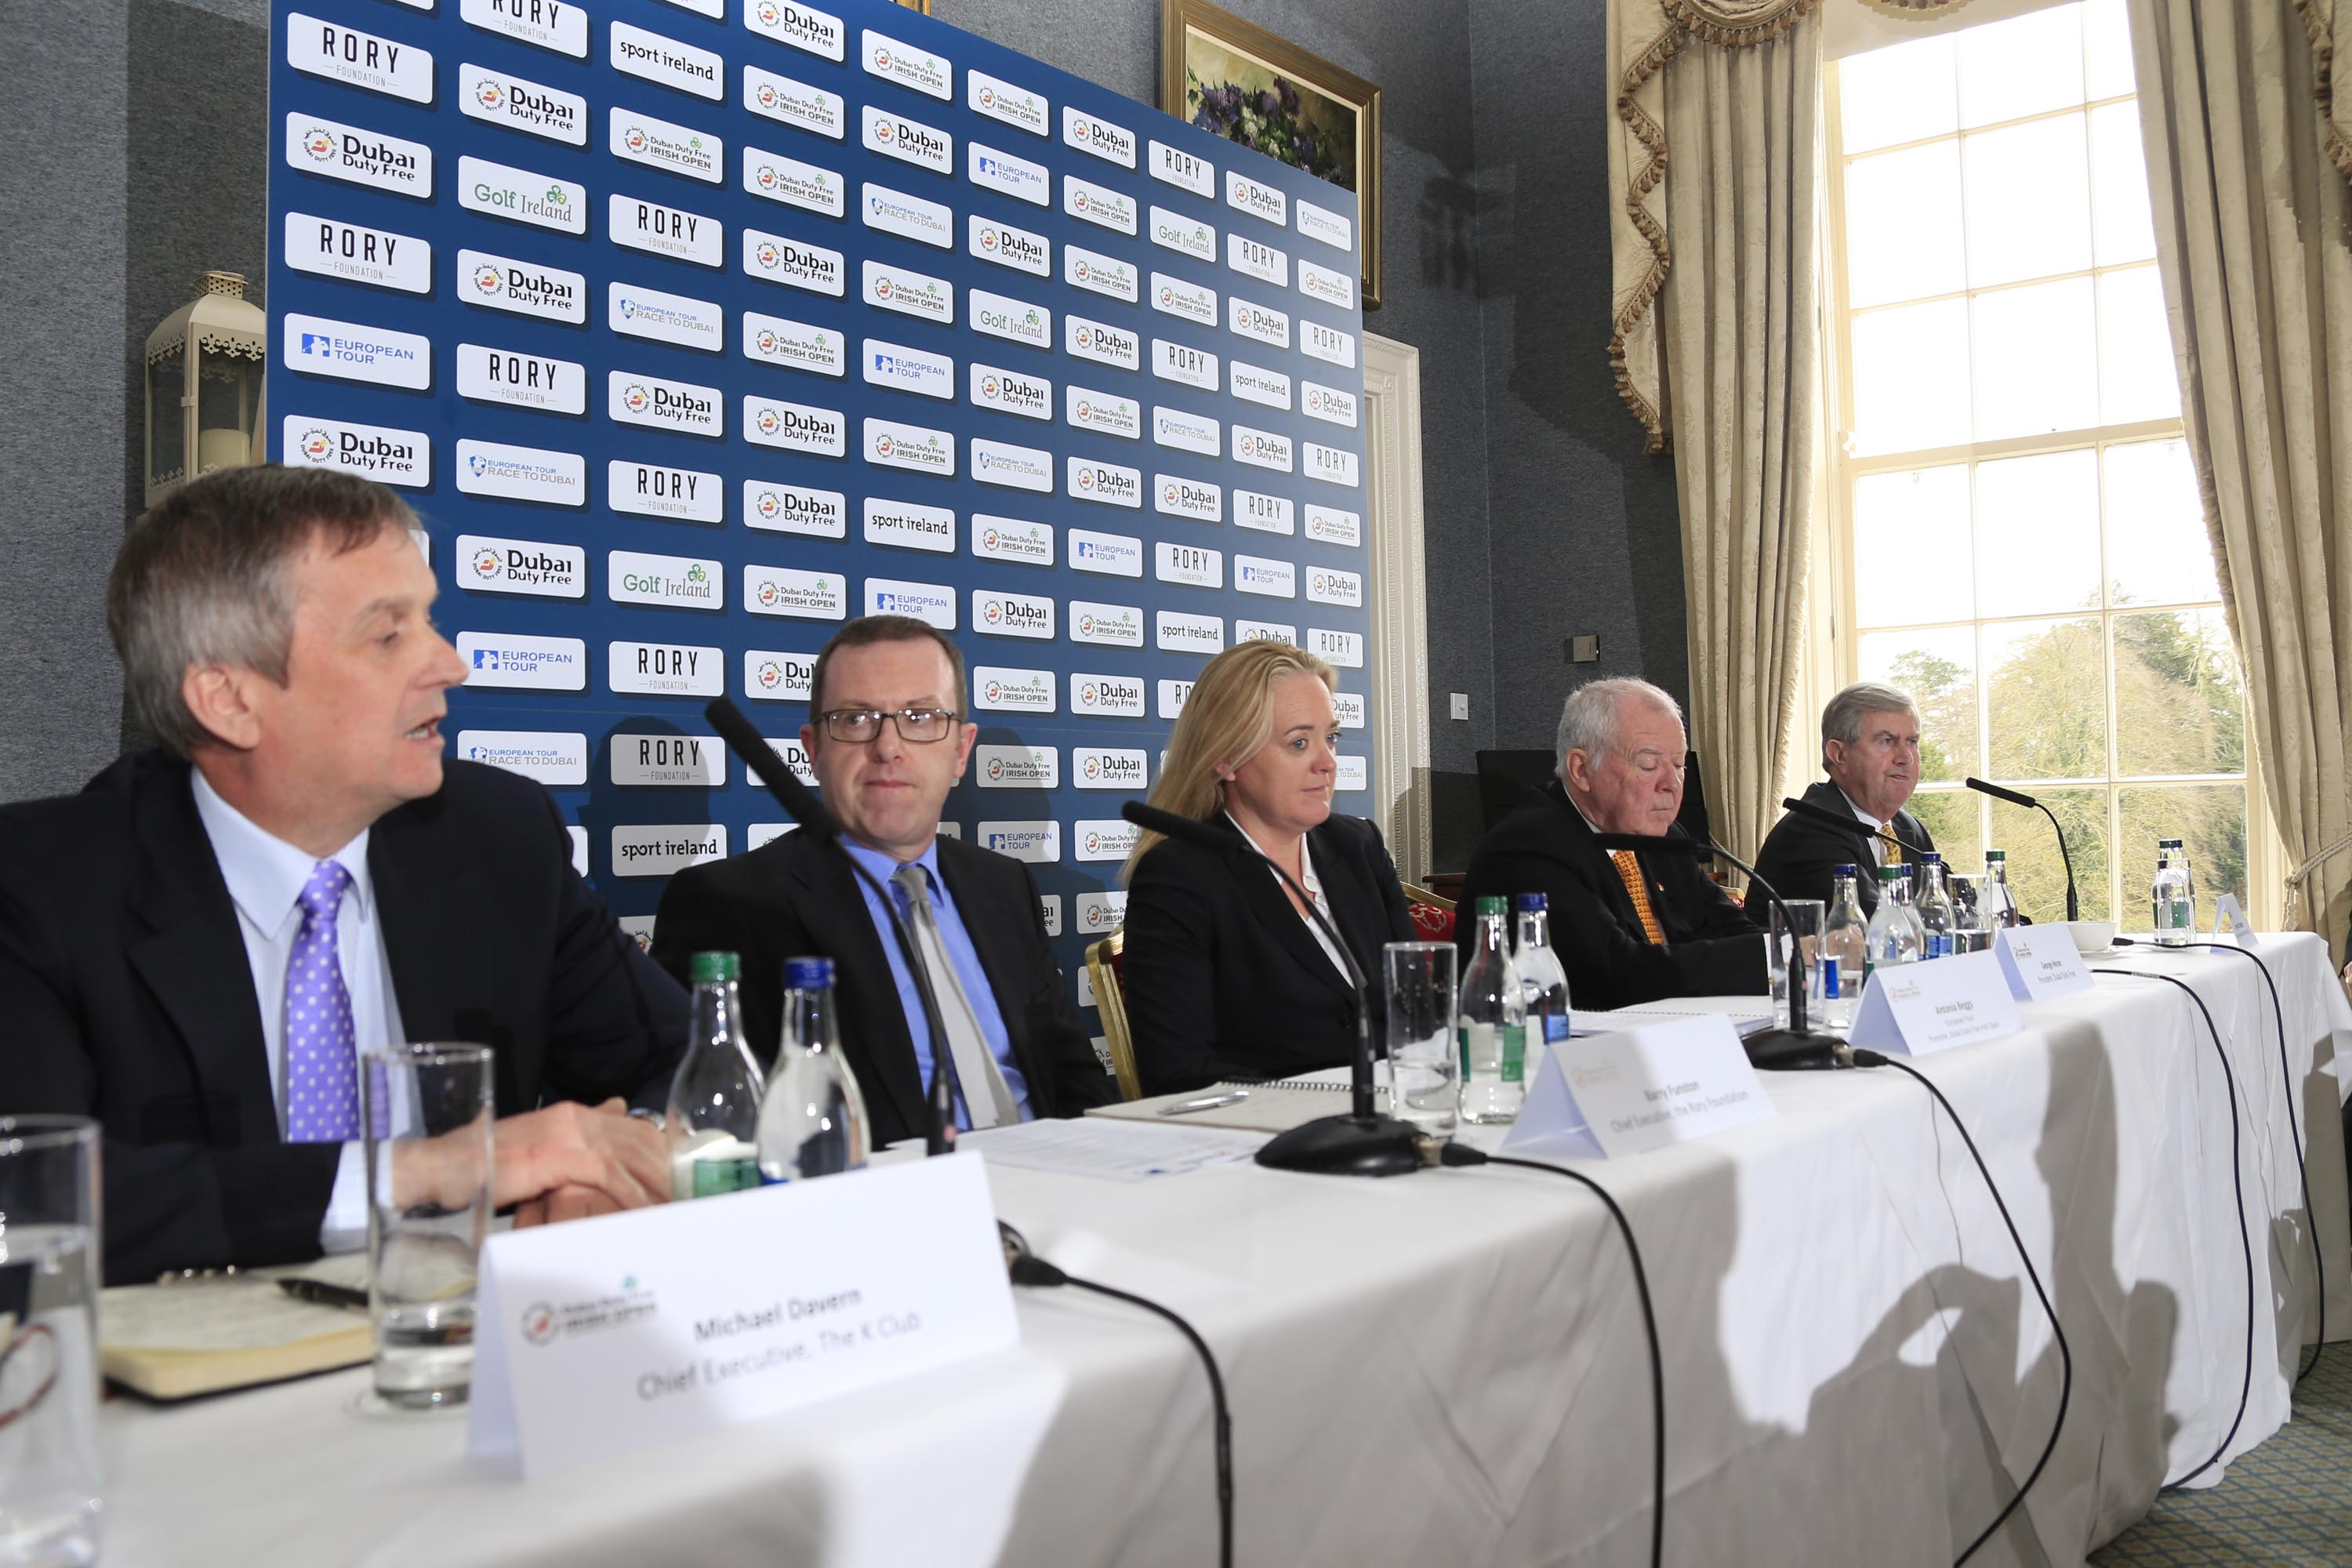 CALL TO ACTION: Golf superstar Rory McIlroy is calling on golf clubs across the island of Ireland to help him make this yearÕs Dubai Duty Free Irish Open hosted by the Rory Foundation one of the best in the tournamentÕs illustrious history. In a letter to every golf club in the Republic of Ireland and Northern Ireland, Rory has requested that clubs come together to support this yearÕs Dubai Duty Free Irish Open, which takes place at The K Club in County Kildare from May 19-22, and he has also produced his own personal Ôfive point planÕ to help clubs and their members to get involved. Announcing details of the clubs initiative are (l-r) Michael Davern, Chief Executive, The K Club, Barry Funston, Chief Executive, the Rory Foundation, Antonia Beggs, European Tour, George Horan, President Dubai Duty Free and Redmond OÕDonoghue, Chairman of the Confederation of Golf in Ireland (CGI). Picture: Fran Caffrey | Golffile All photos usage must carry mandatory copyright credit (© Golffile | Fran Caffrey)